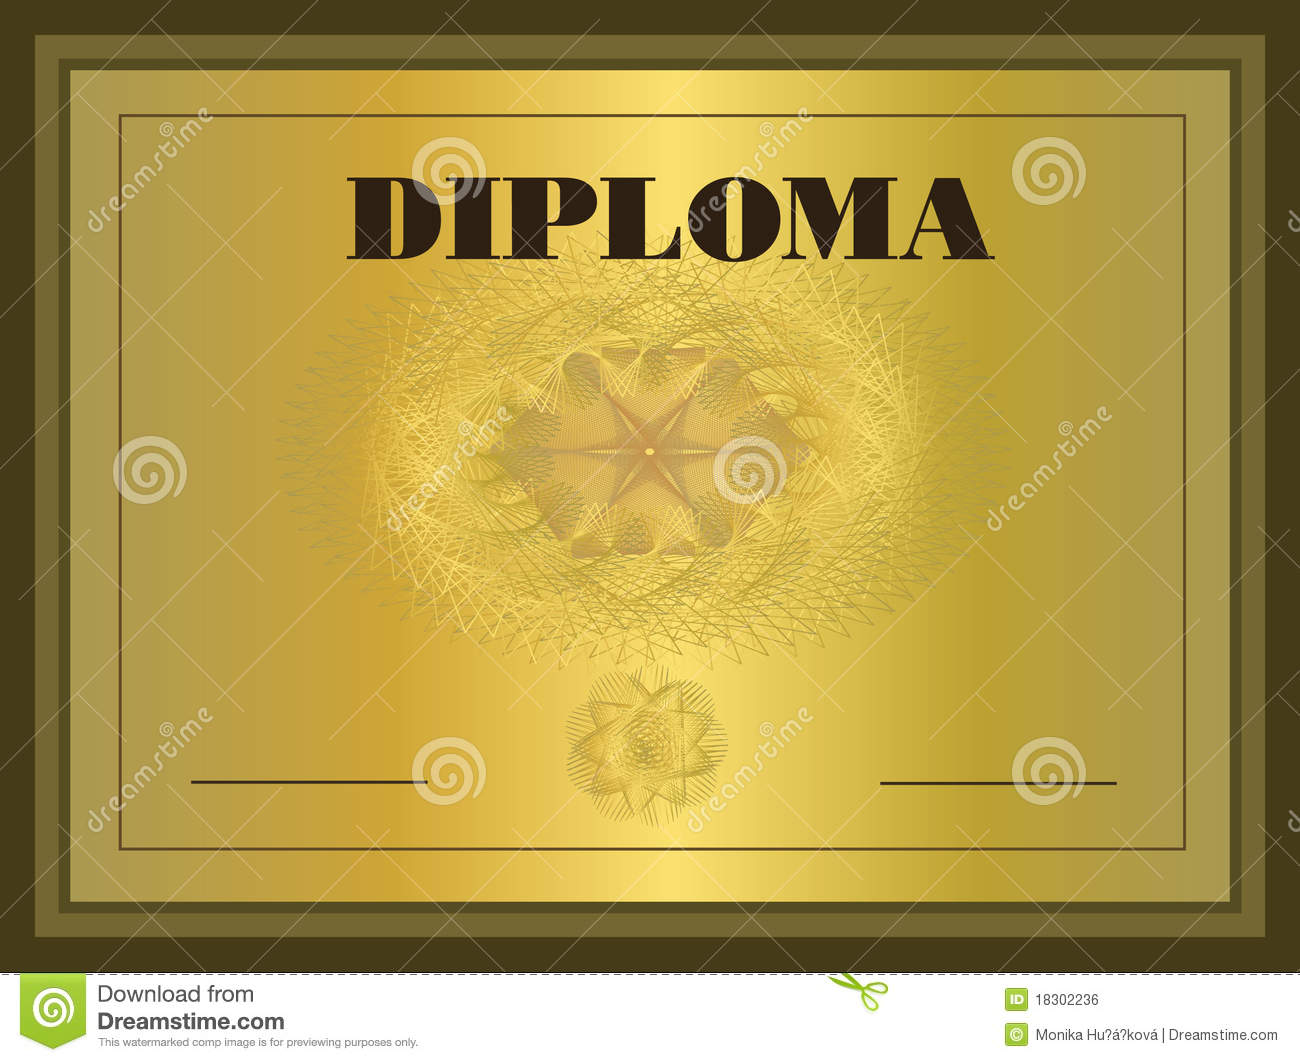 Diploma Gold Frame Royalty Free Stock Image - Image: 18302236